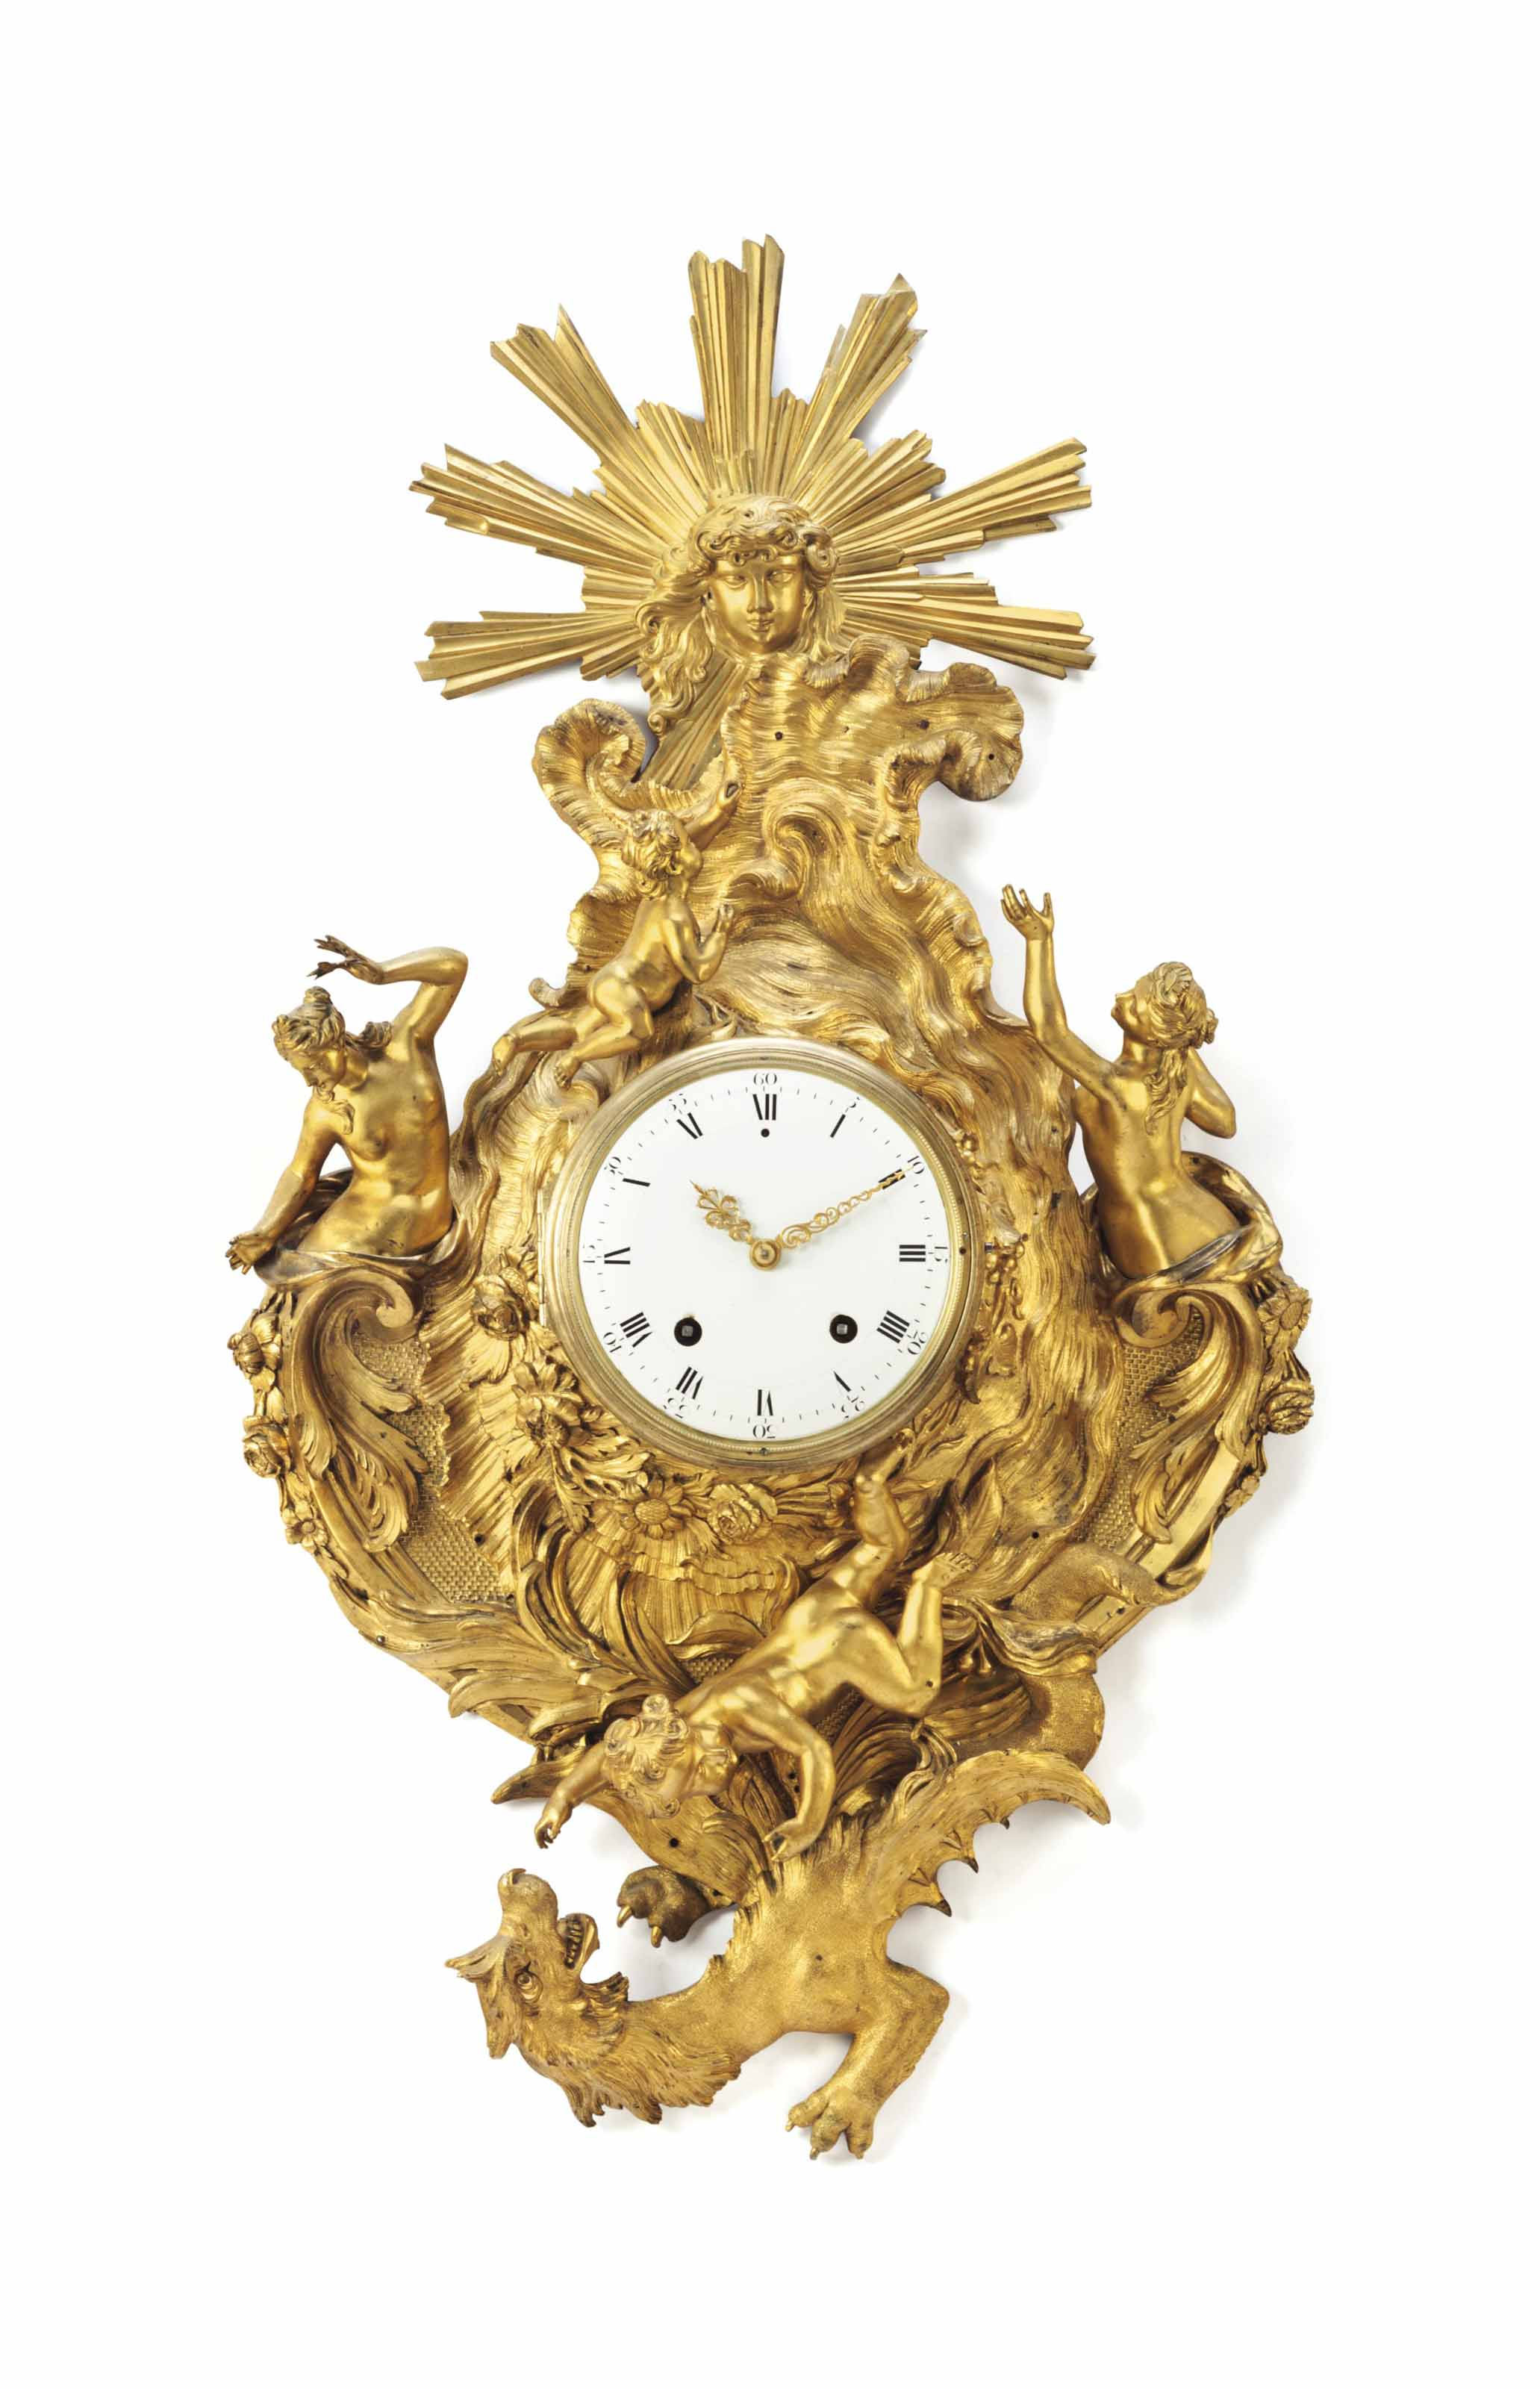 A LOUIS XV ORMOLU CARTEL CLOCK